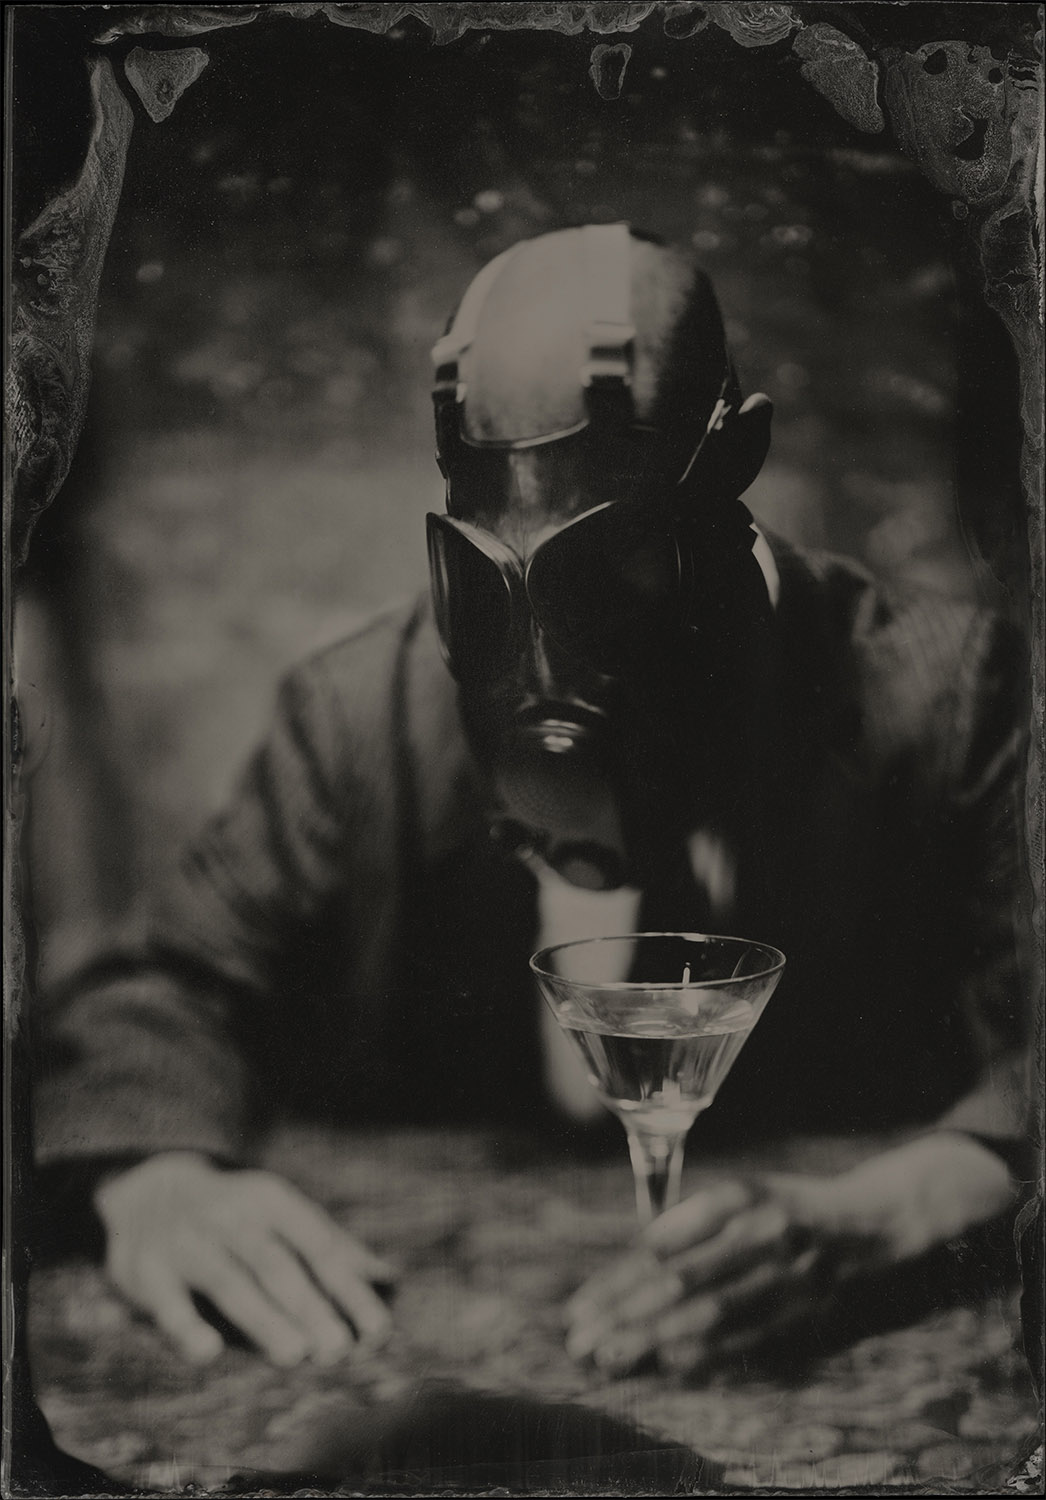 The End is Nigh - By:James Wigger  www.jameswigger.com